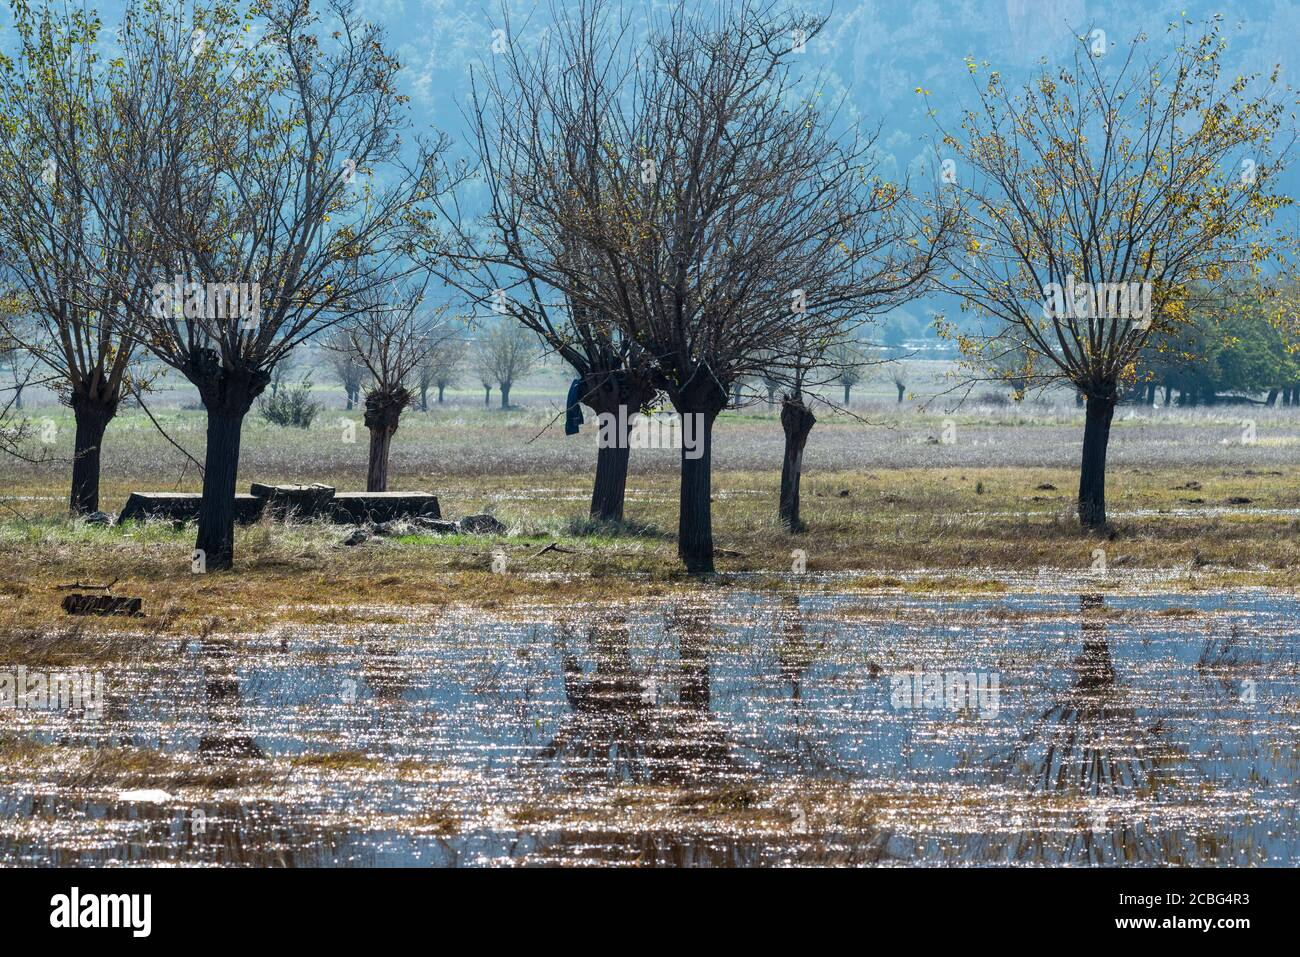 Flooded, Autumn, landscape with old water well and mulberry trees on the flood plains of Mantineia, near Tripoli, Southern Arcadia, Peloponnese, Greec Stock Photo